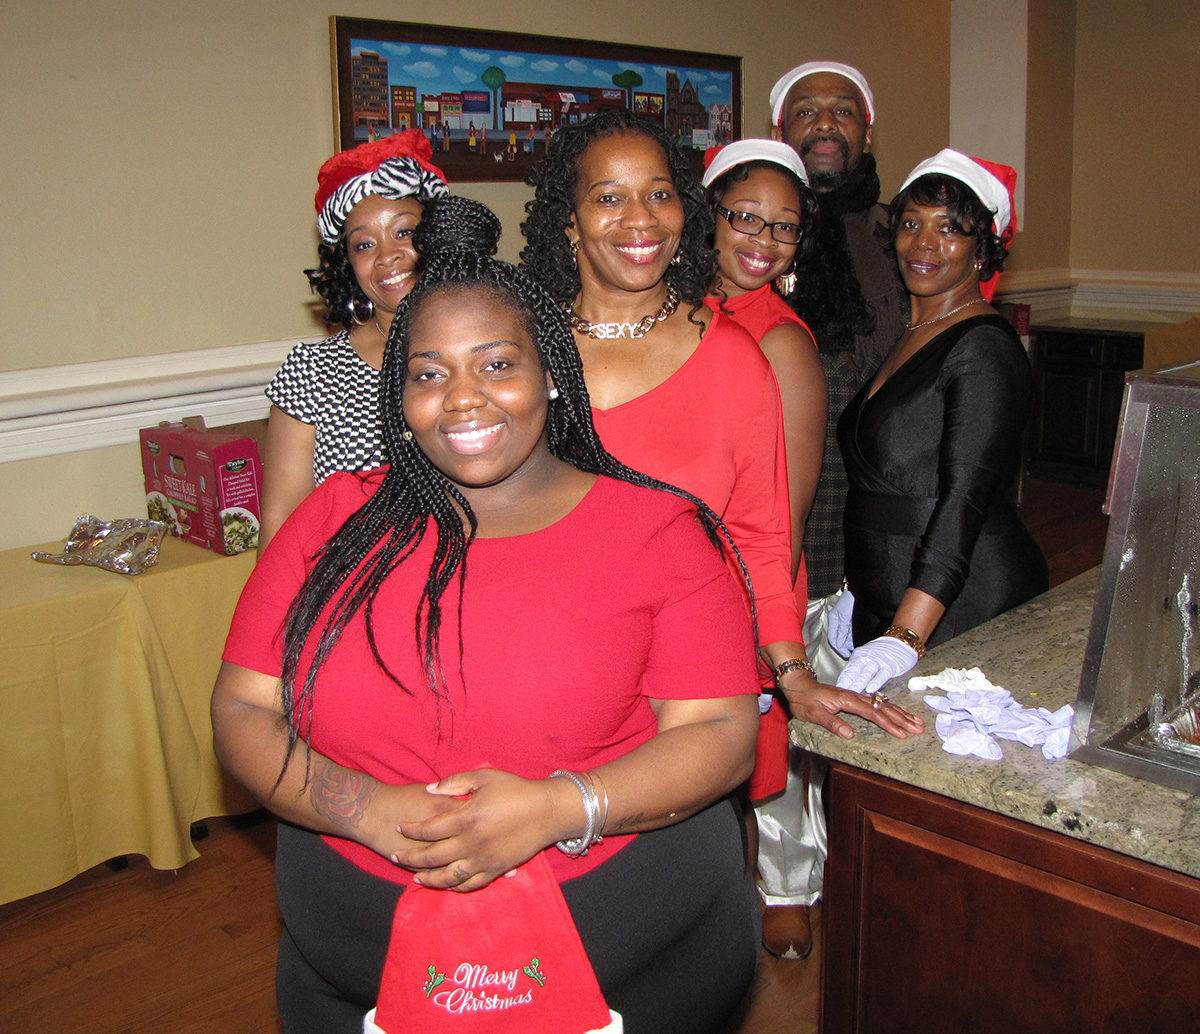 Fancy and out of uniform, members of the New Community Security Department dressed to impress for their holiday party.